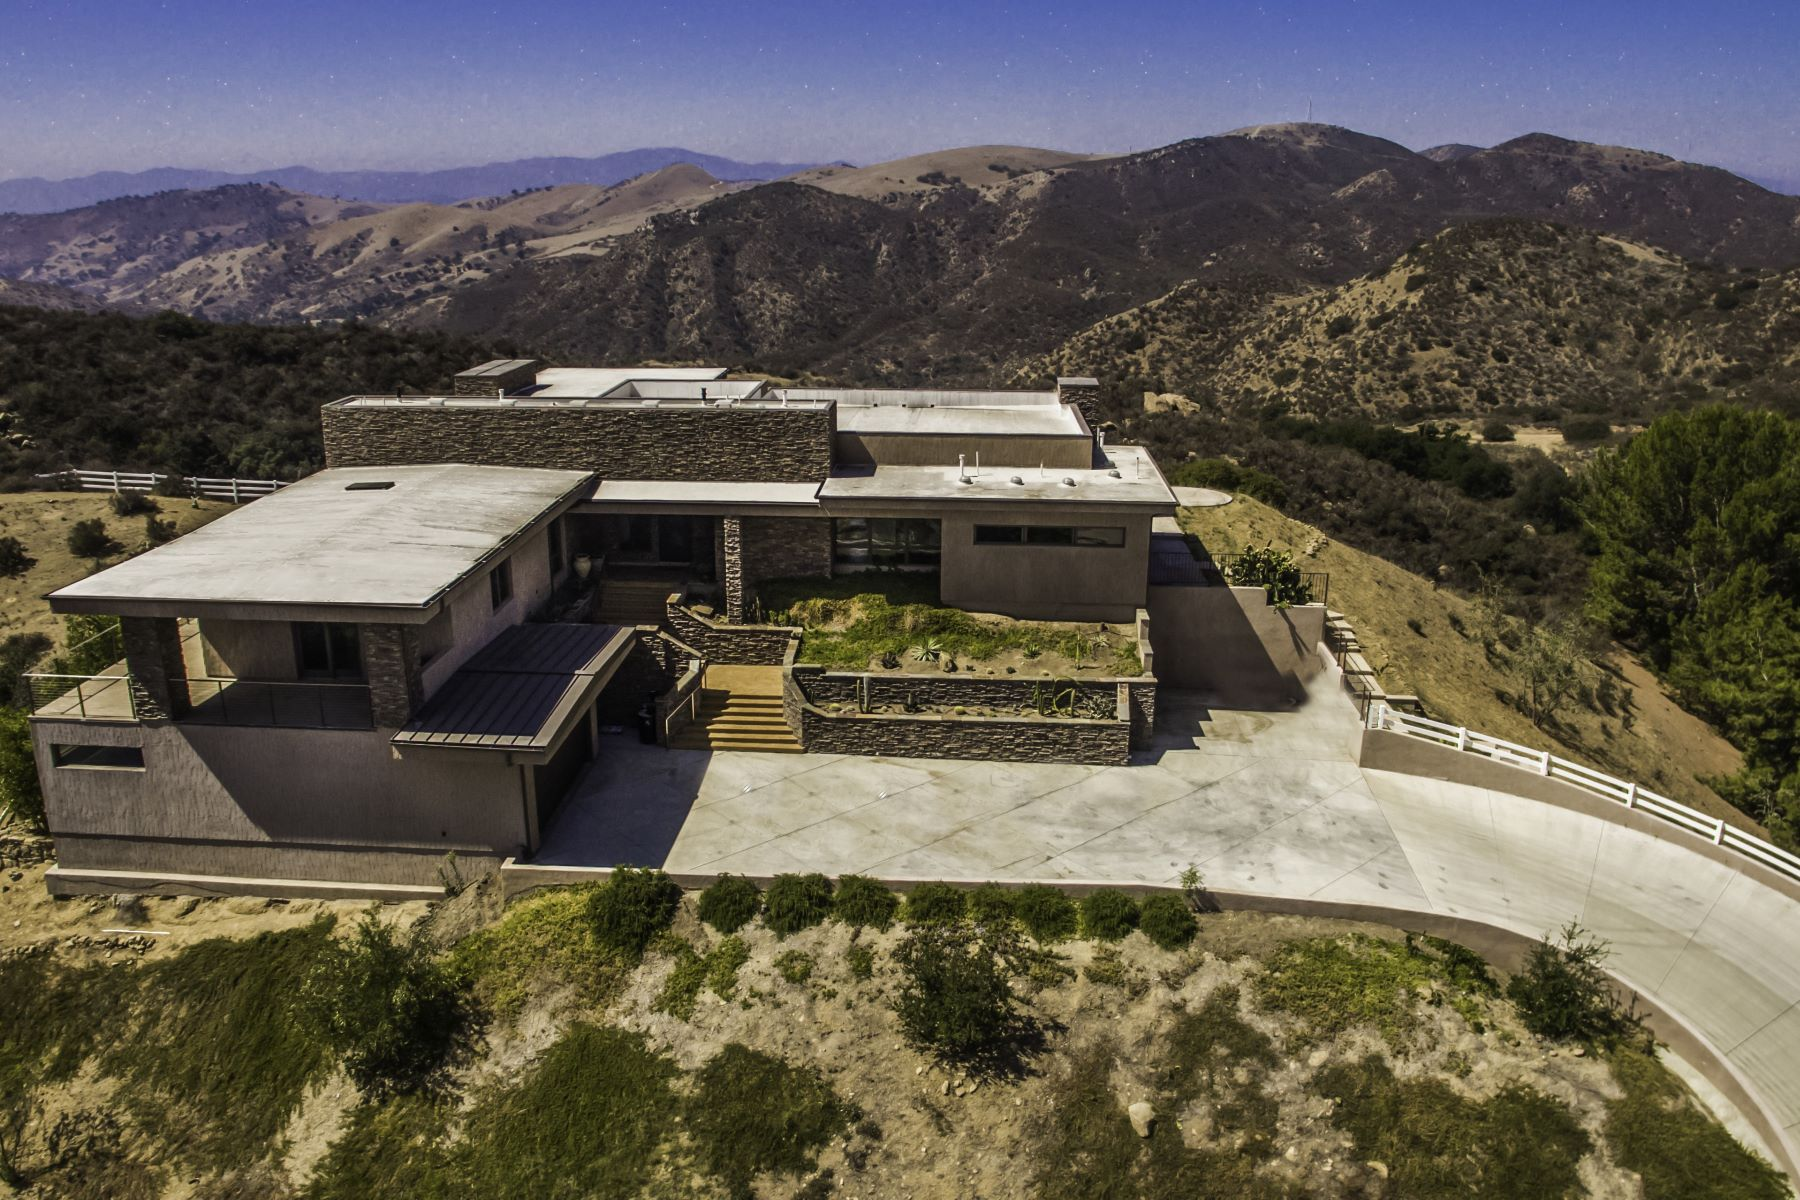 Single Family Home for Sale at 9 Morgan Rd. Bell Canyon, California 91307 United States